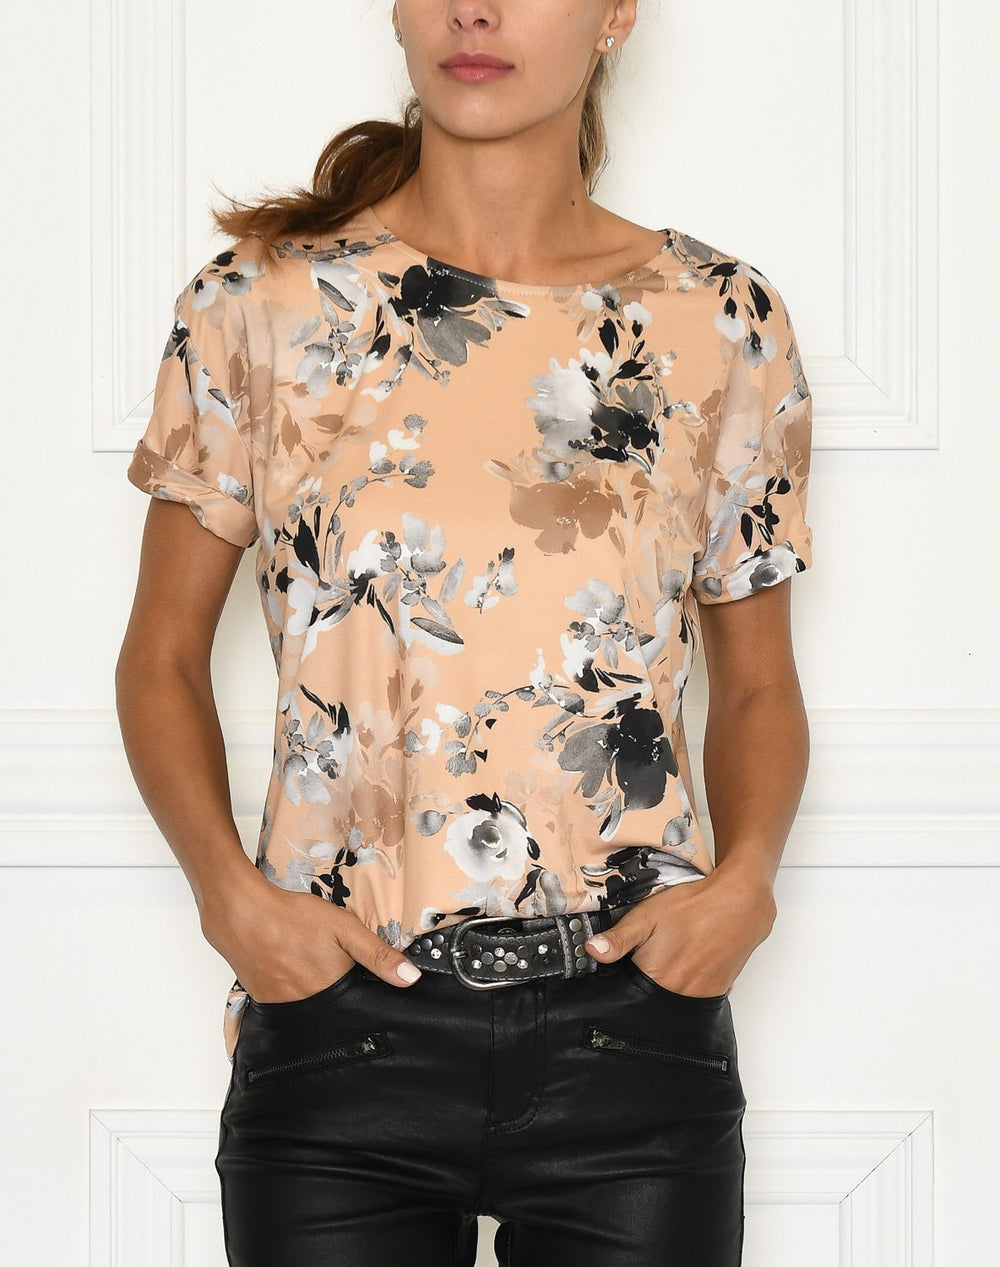 Luxzuz Karin t-shirt leather - Online-Mode